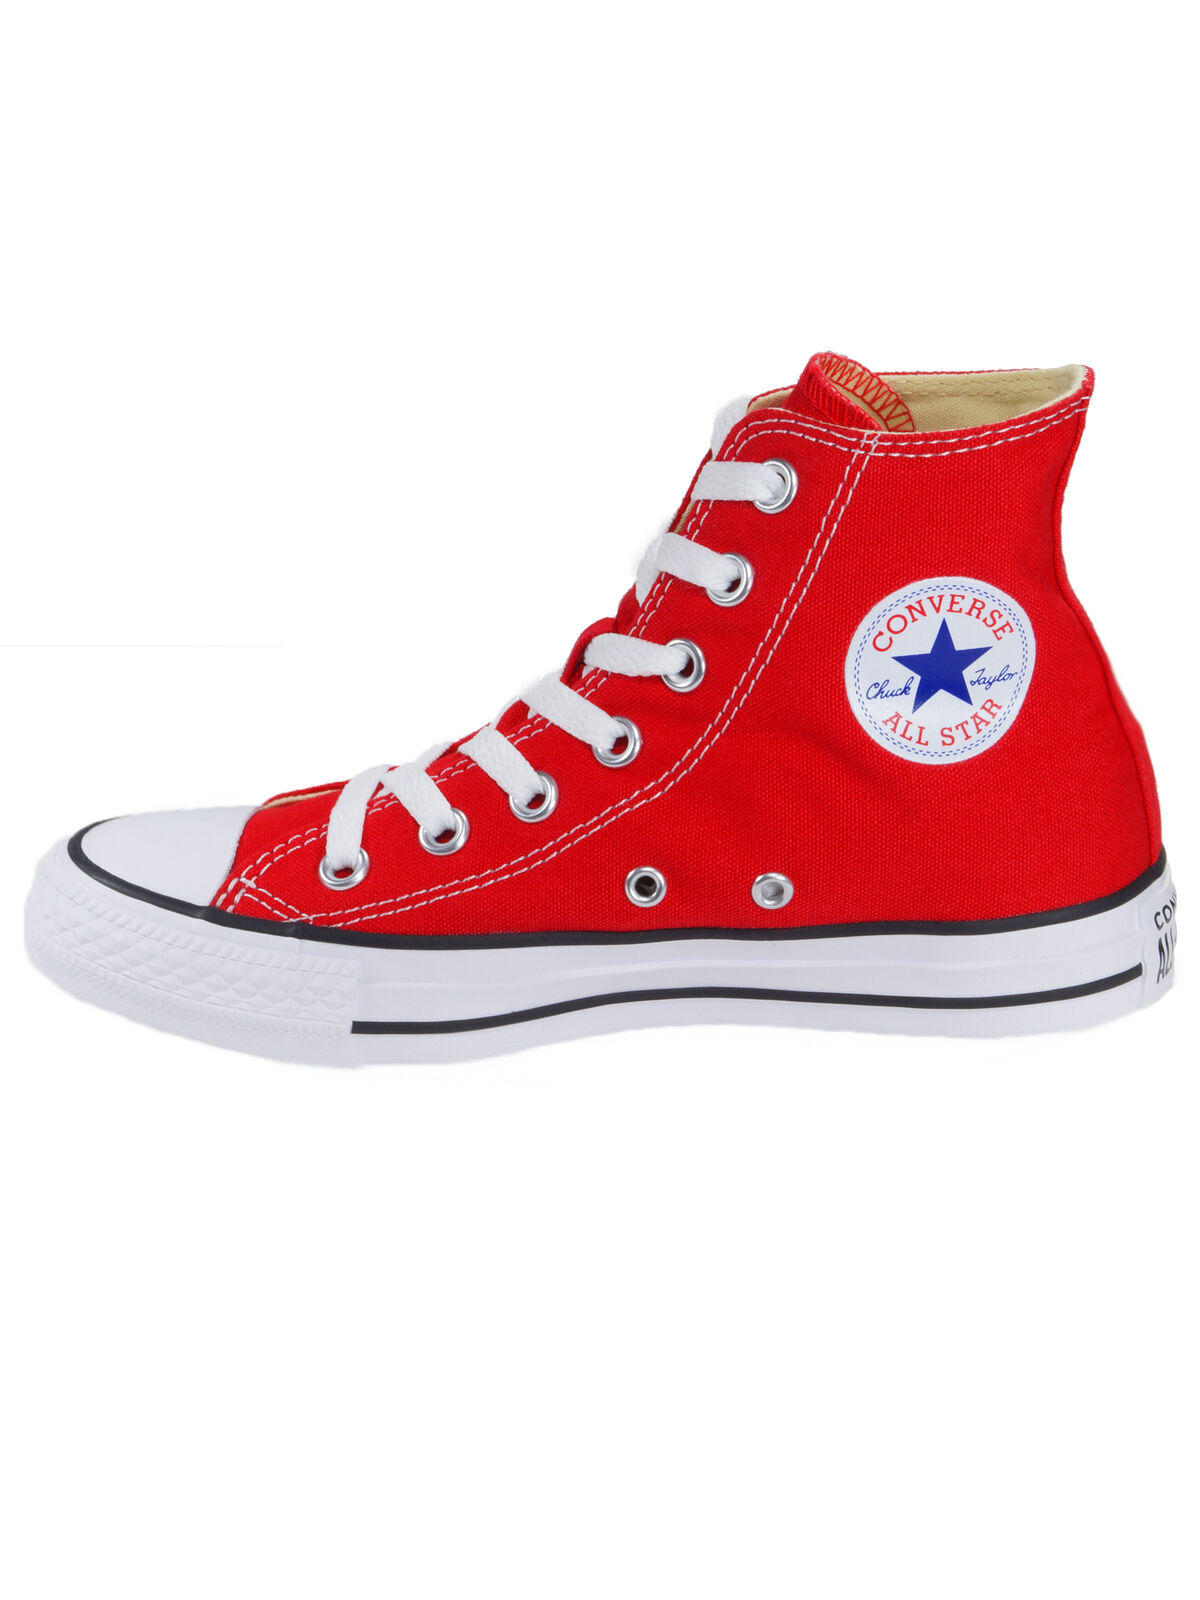 Converse Femmes Chaussures Chuck CT All Star Hi Rouge Lin paniers 36